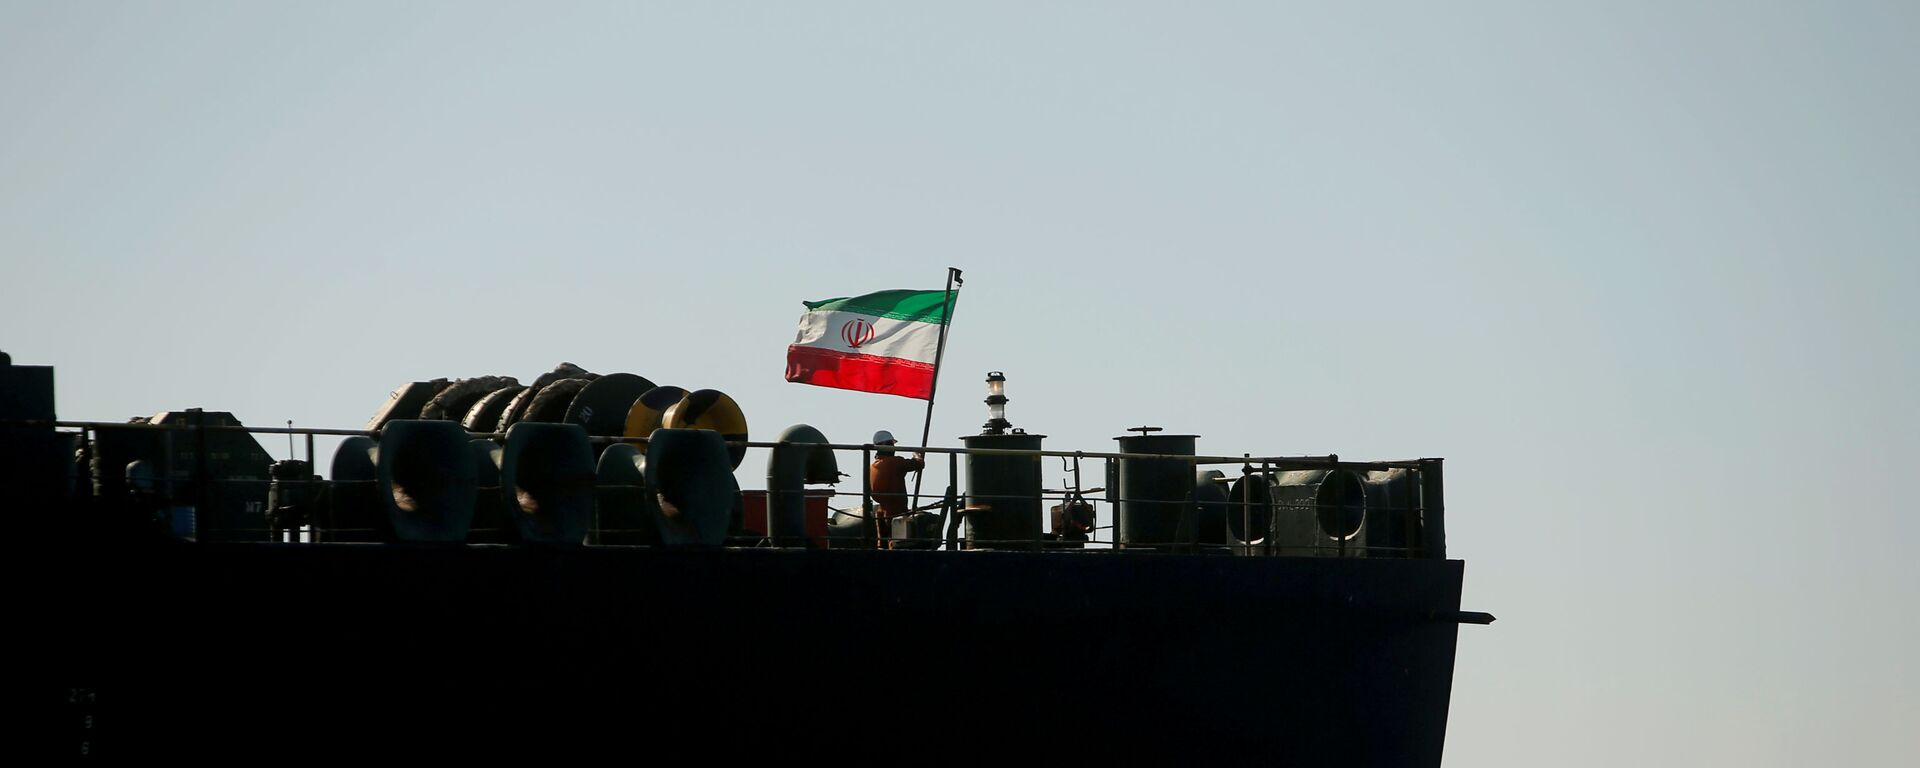 A crew member raises the Iranian flag at Iranian oil tanker Adrian Darya 1, formerly named Grace 1, as it sits anchored after the Supreme Court of the British territory lifted its detention order, in the Strait of Gibraltar, Spain, August 18, 2019. - Sputnik International, 1920, 19.03.2021